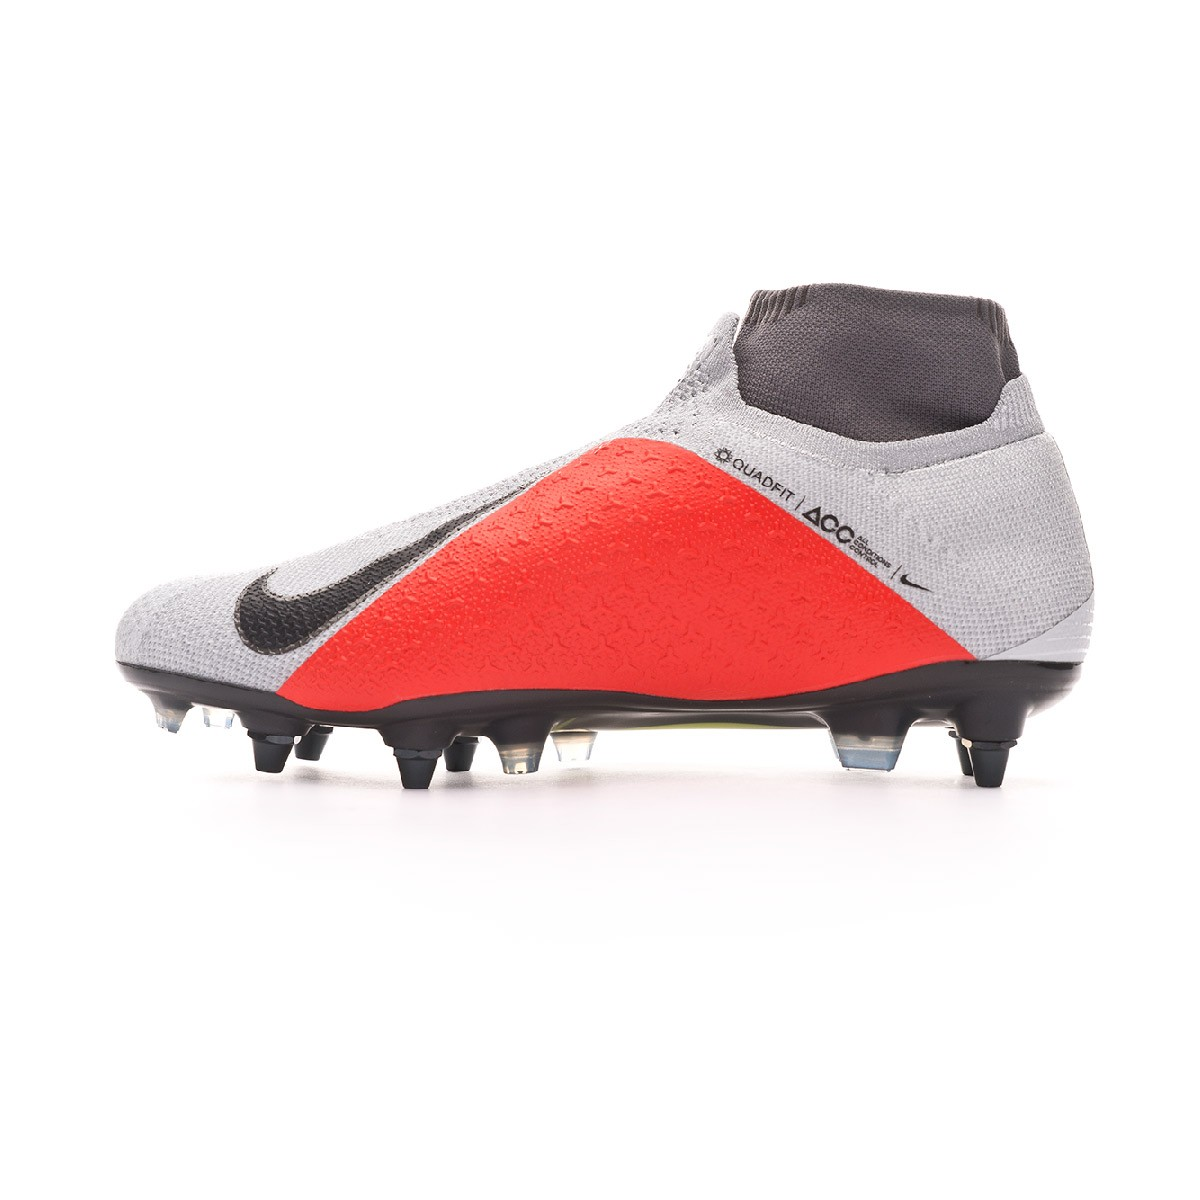 5a8b1ebc3 Football Boots Nike Phantom Vision Elite DF SG-Pro AC Pure  platinum-Black-Light crimson-Dark grey - Tienda de fútbol Fútbol Emotion